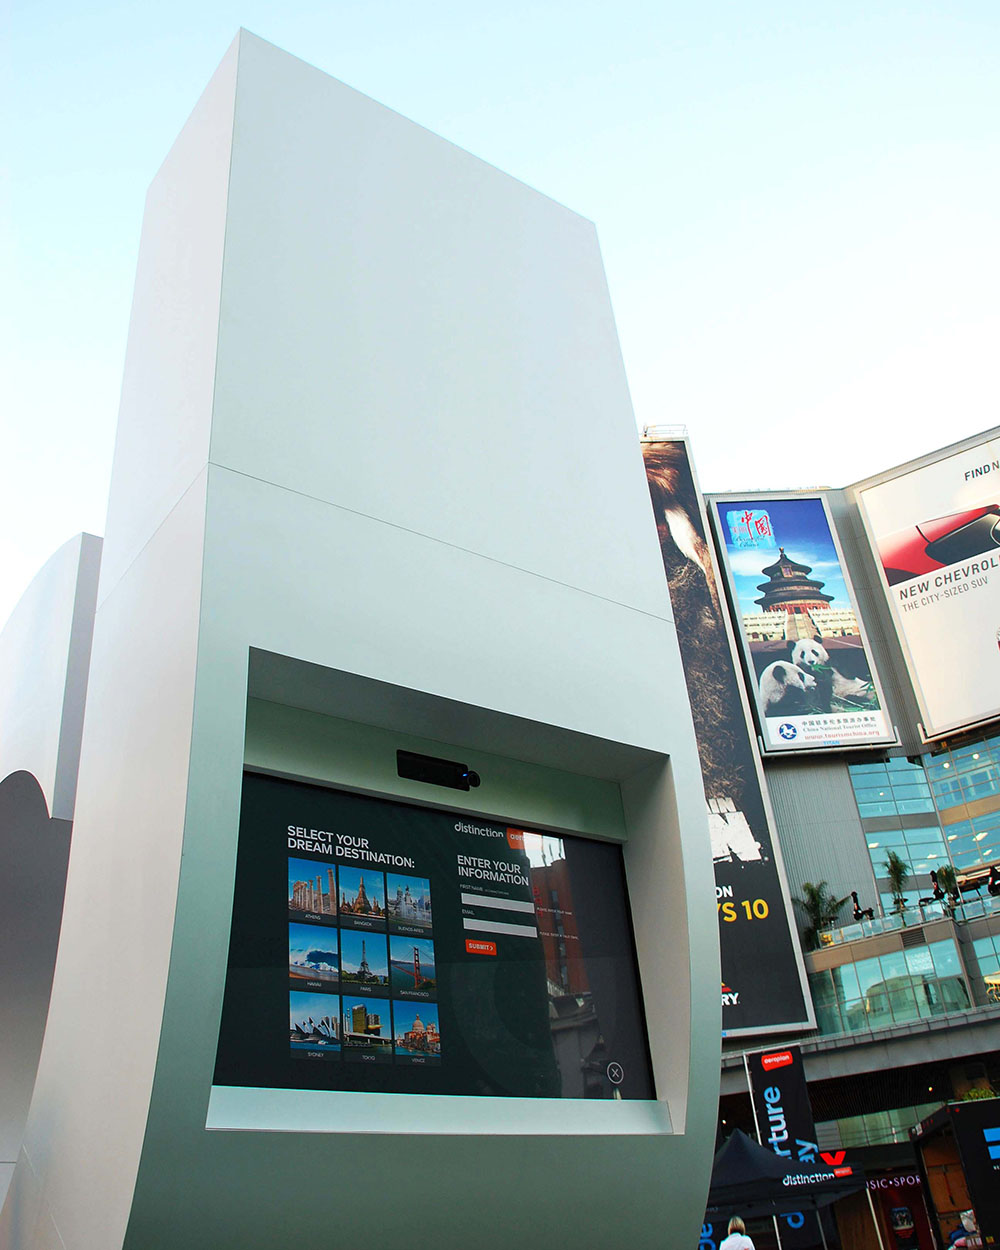 Touch-activated screen used by participants to interact with Aeroplan advertising installation.